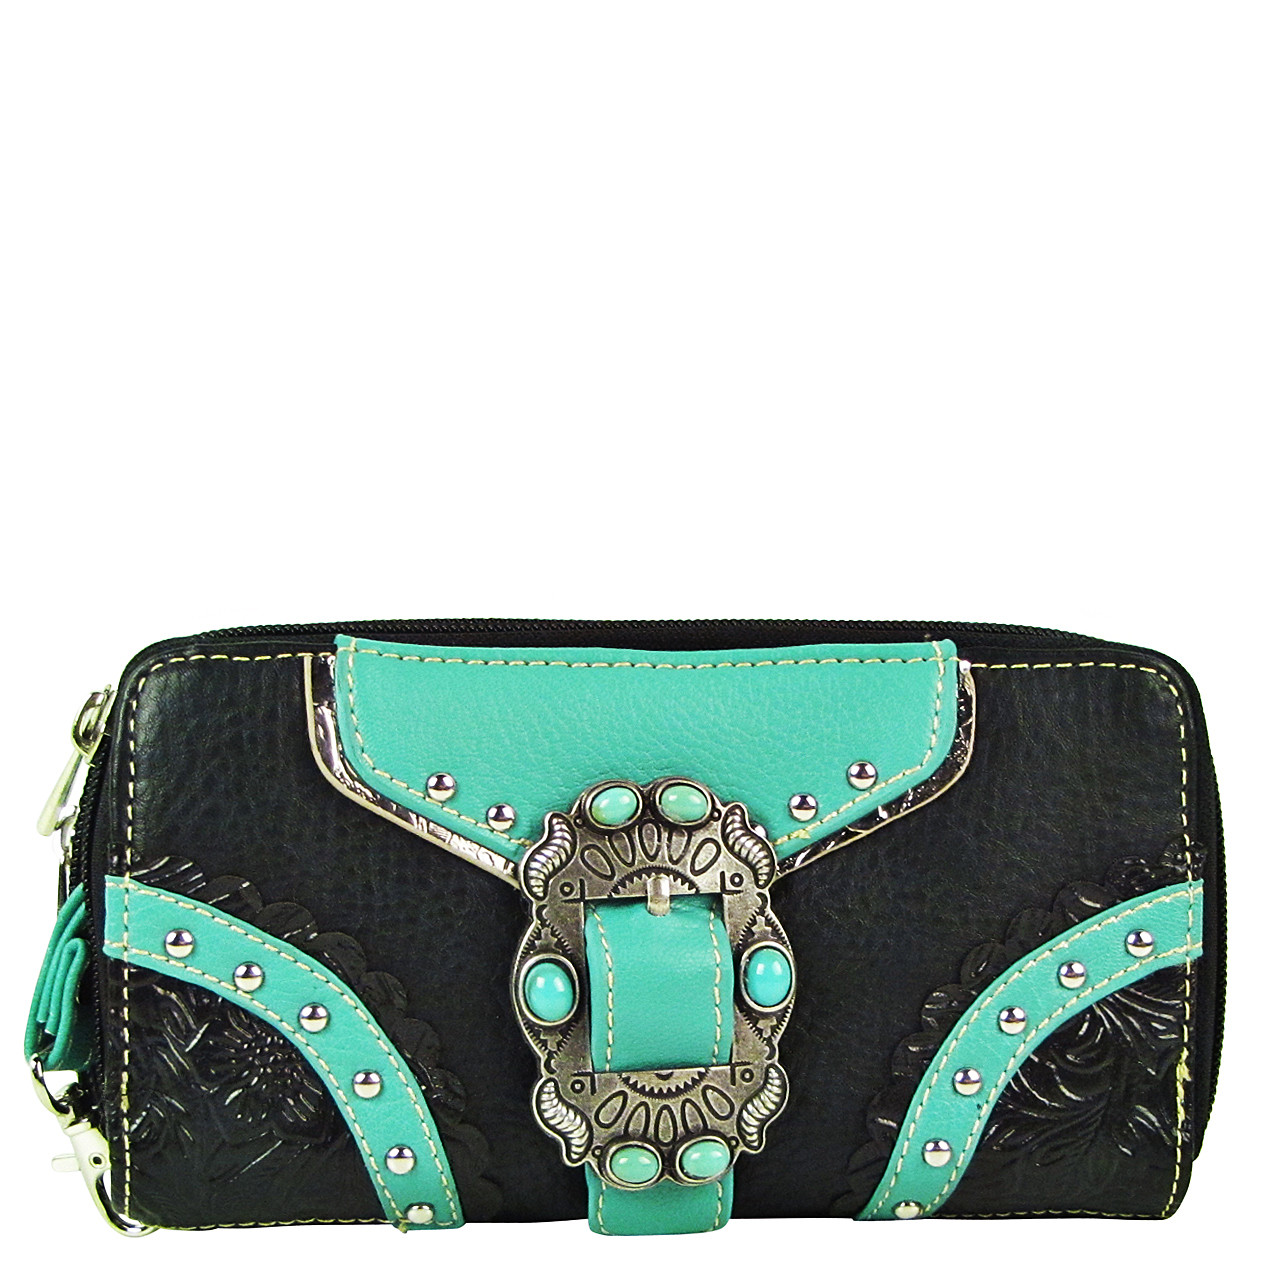 BLACK STUDDED BUCKLE LOOK ZIPPER WALLET CB3-1210BLK